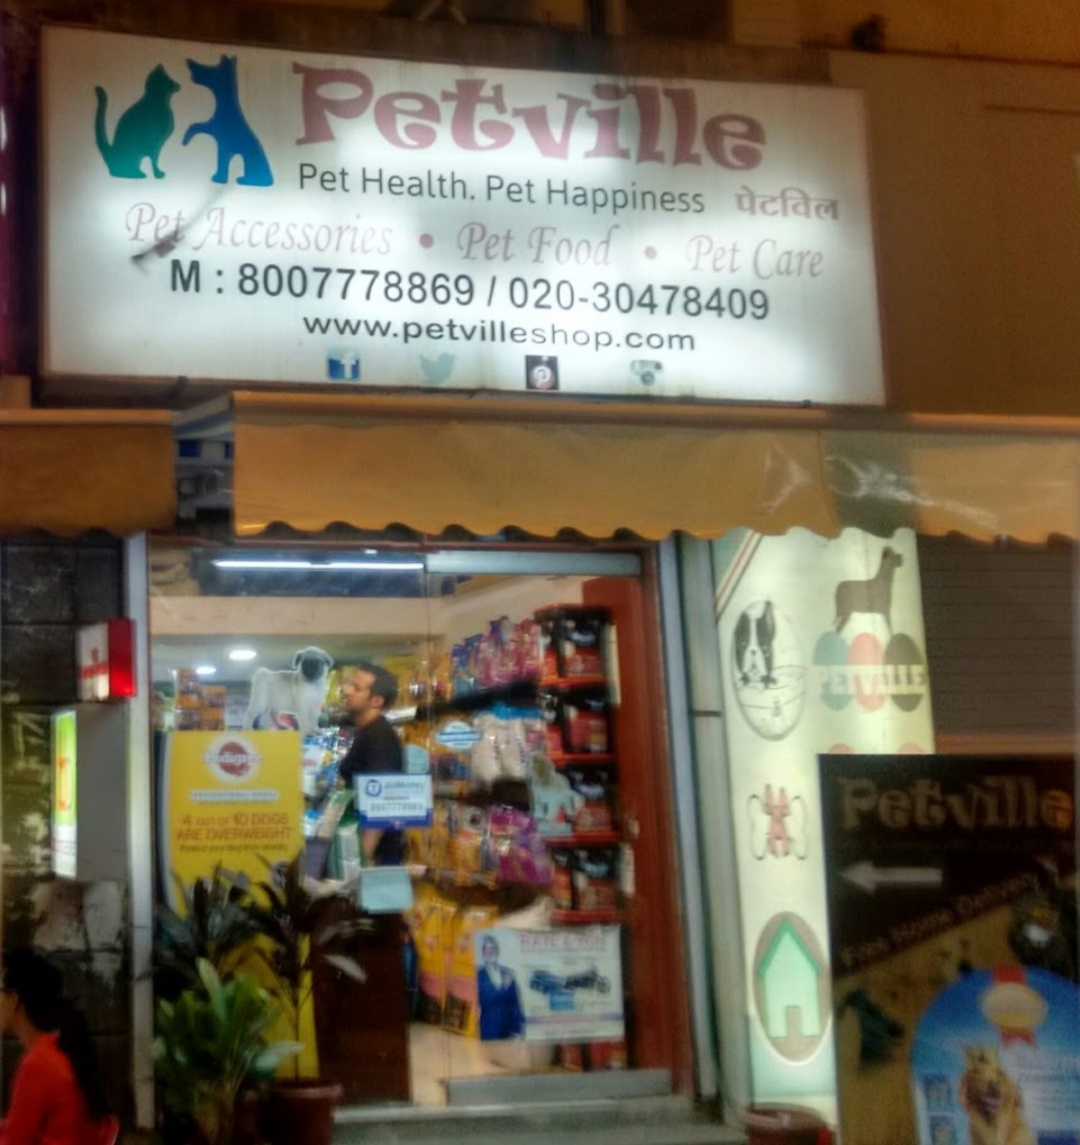 Petville Pet Shop